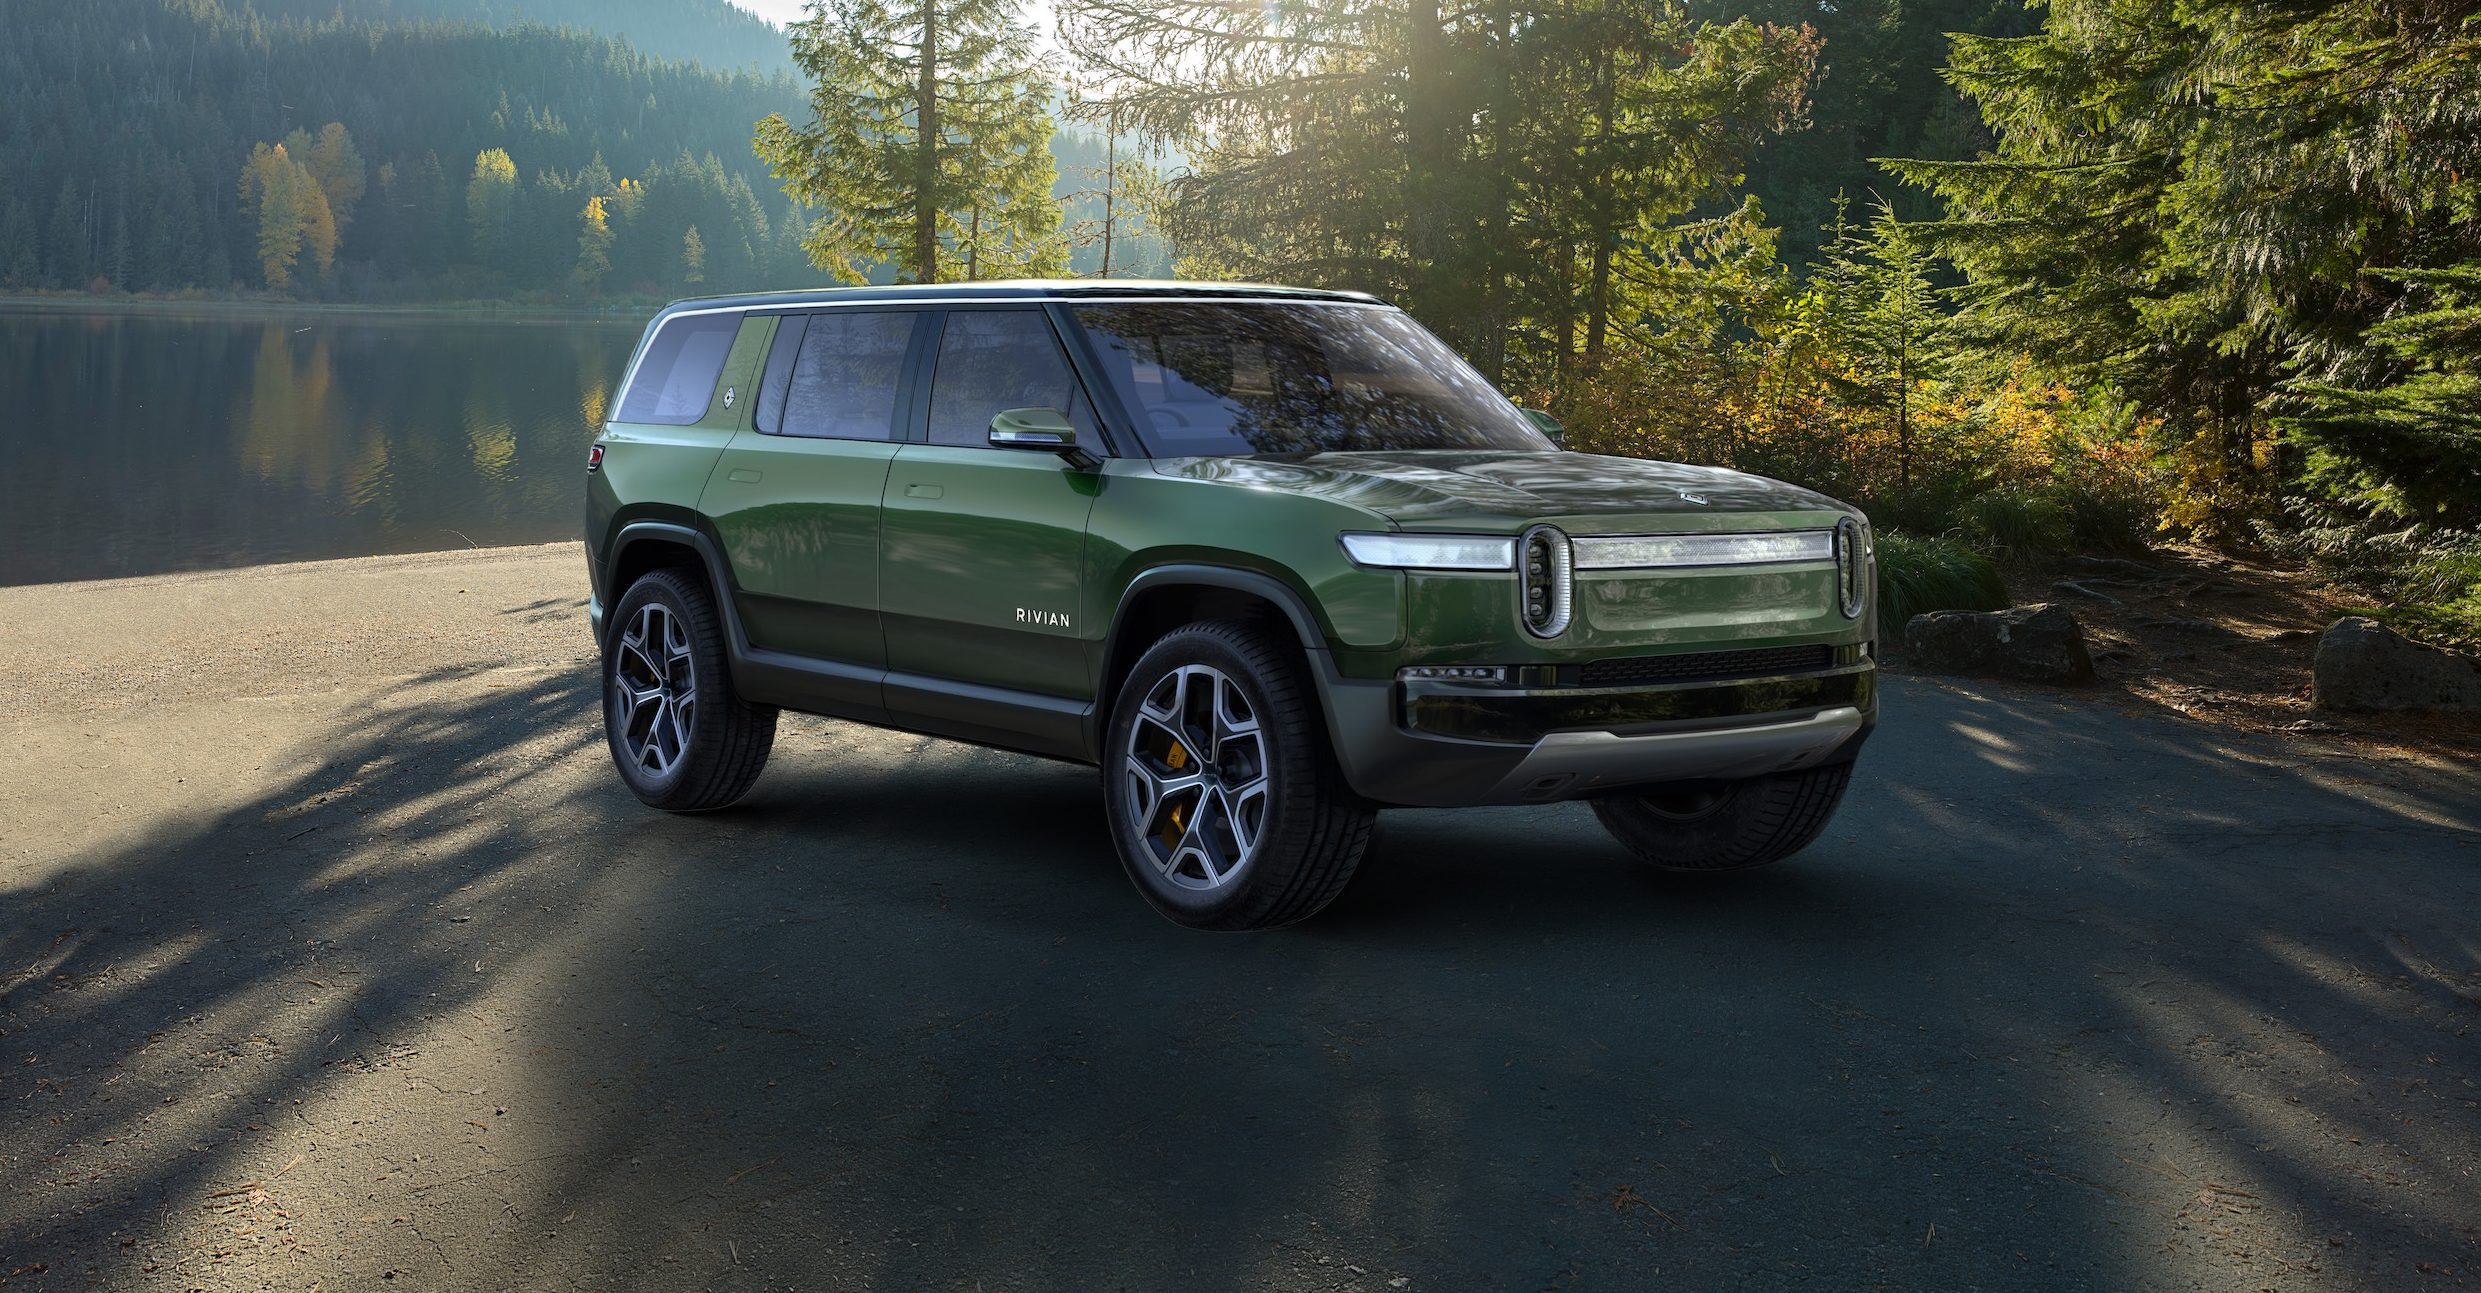 Rivian R1S Adventure Electric Vehicle